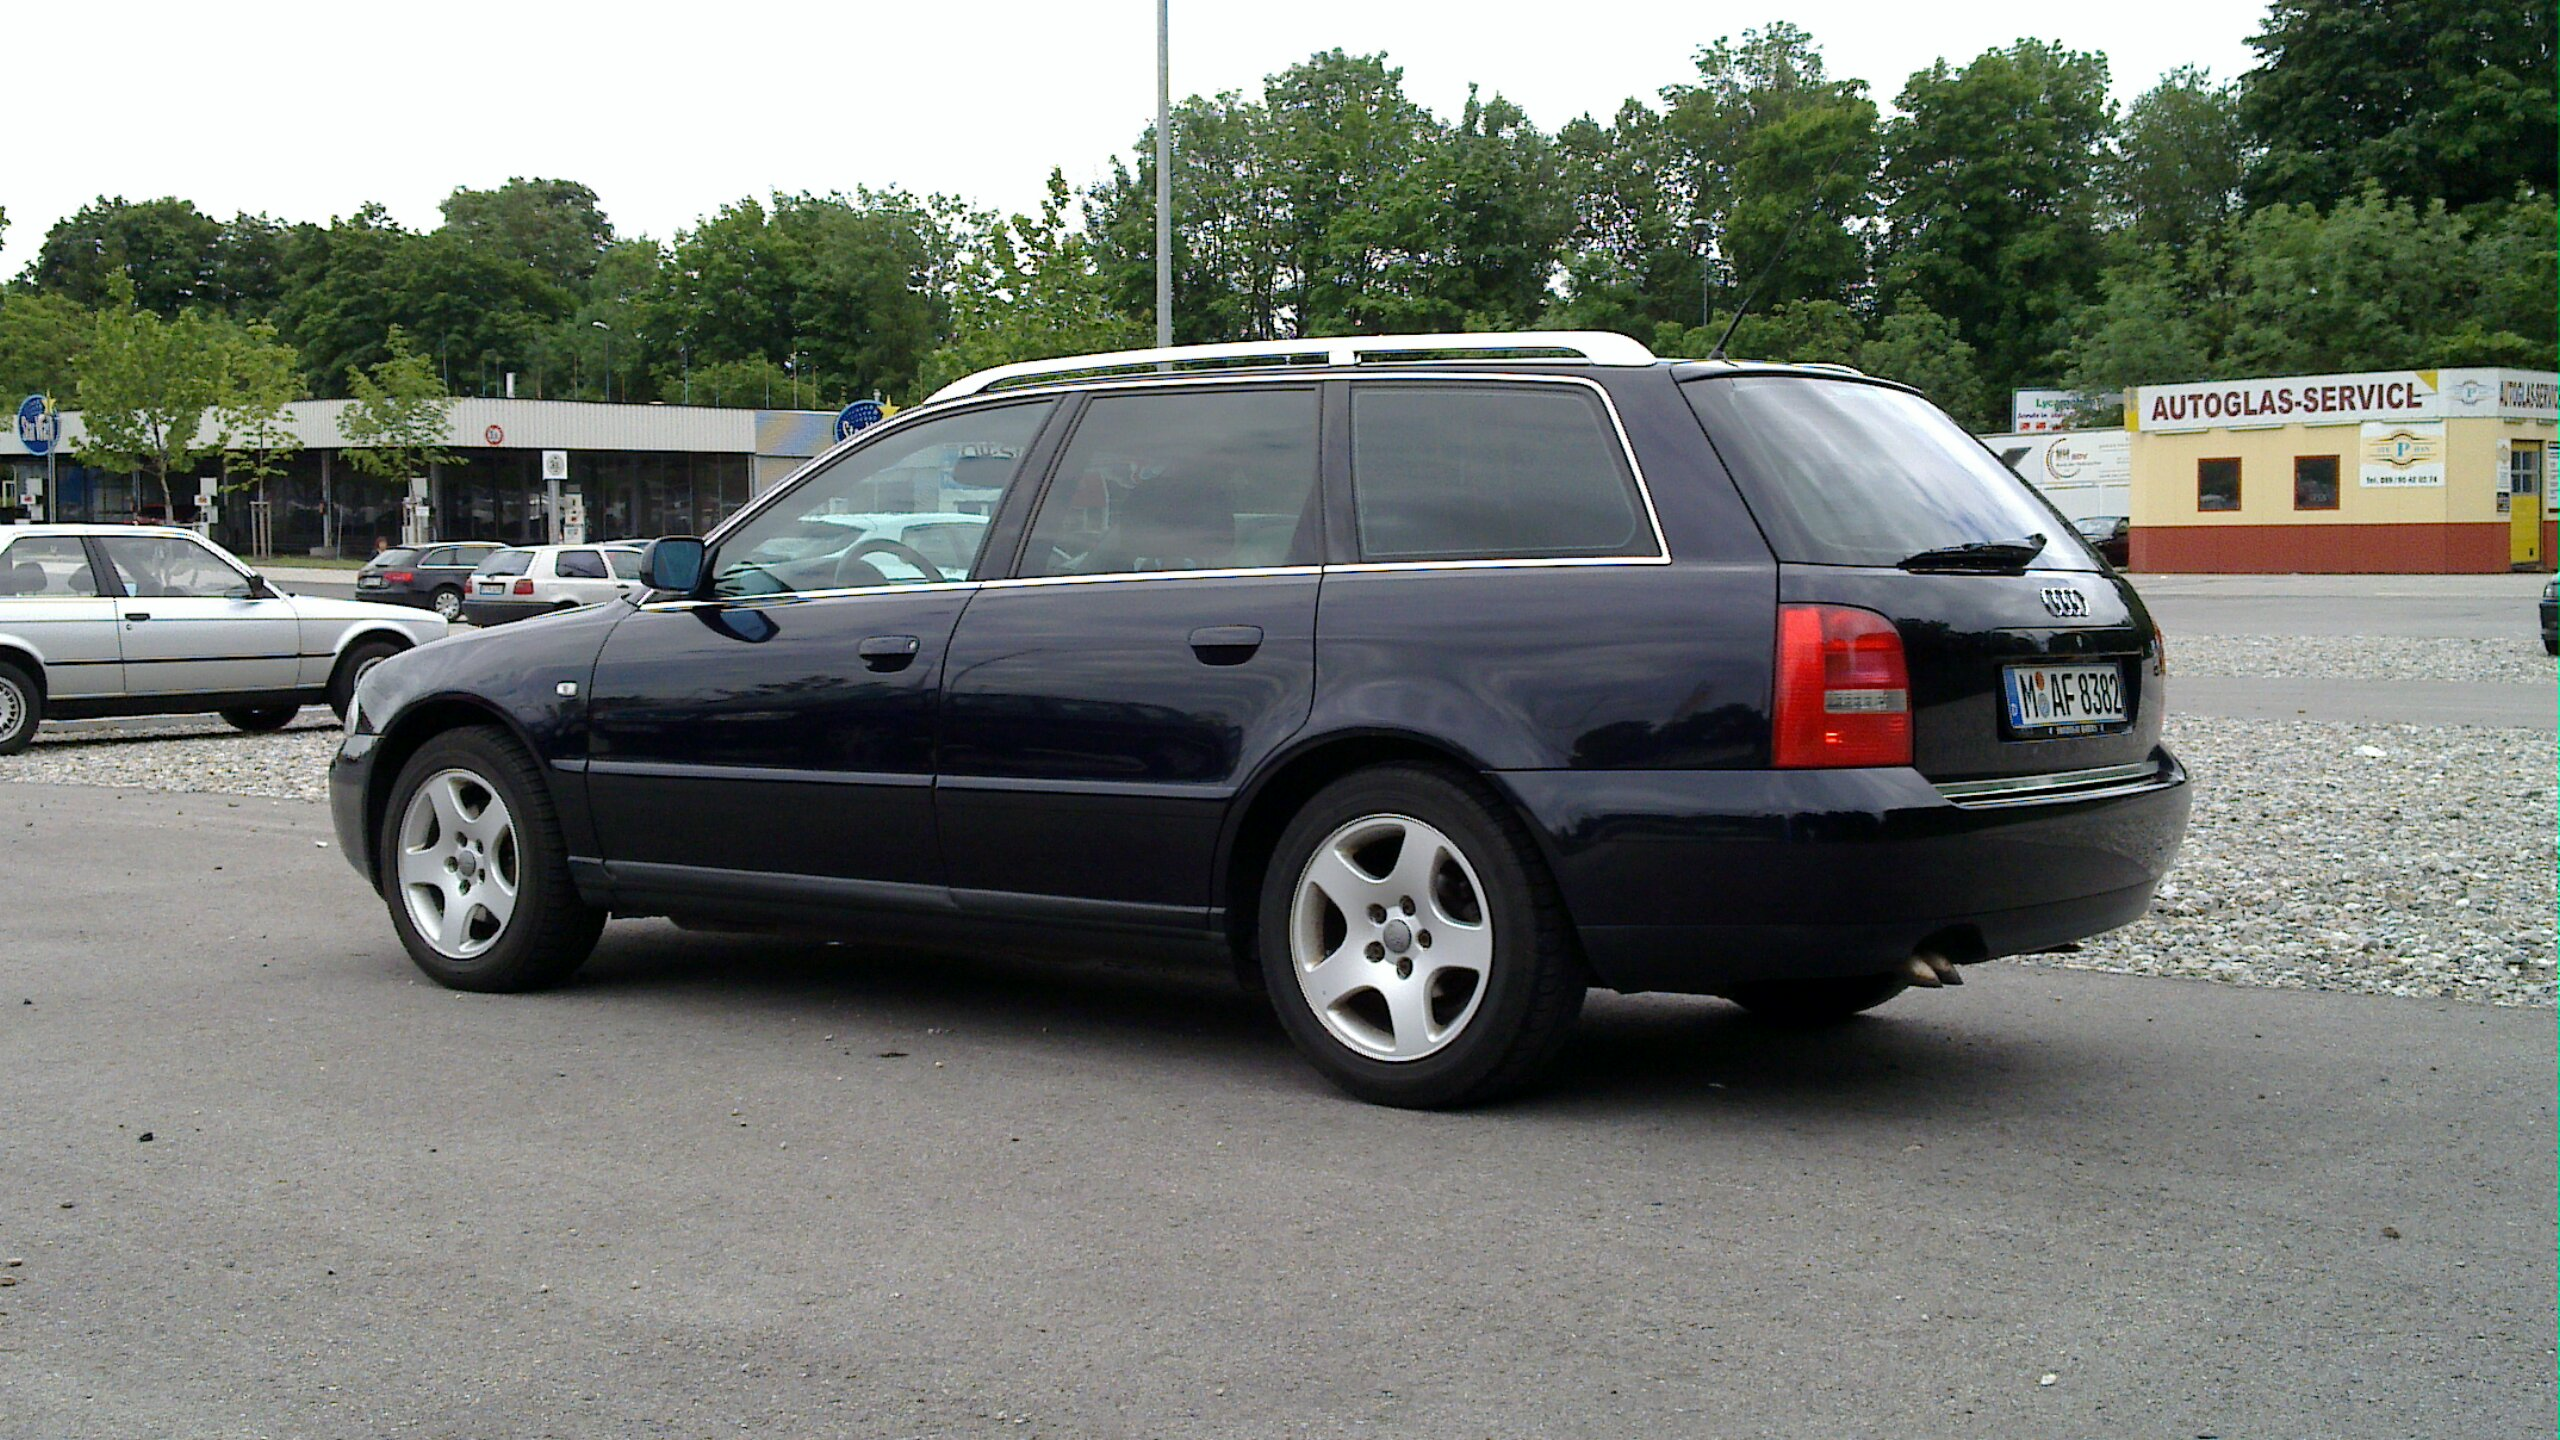 2000 Audi A4 avant (8d,b5) – pictures, information and specs - Auto